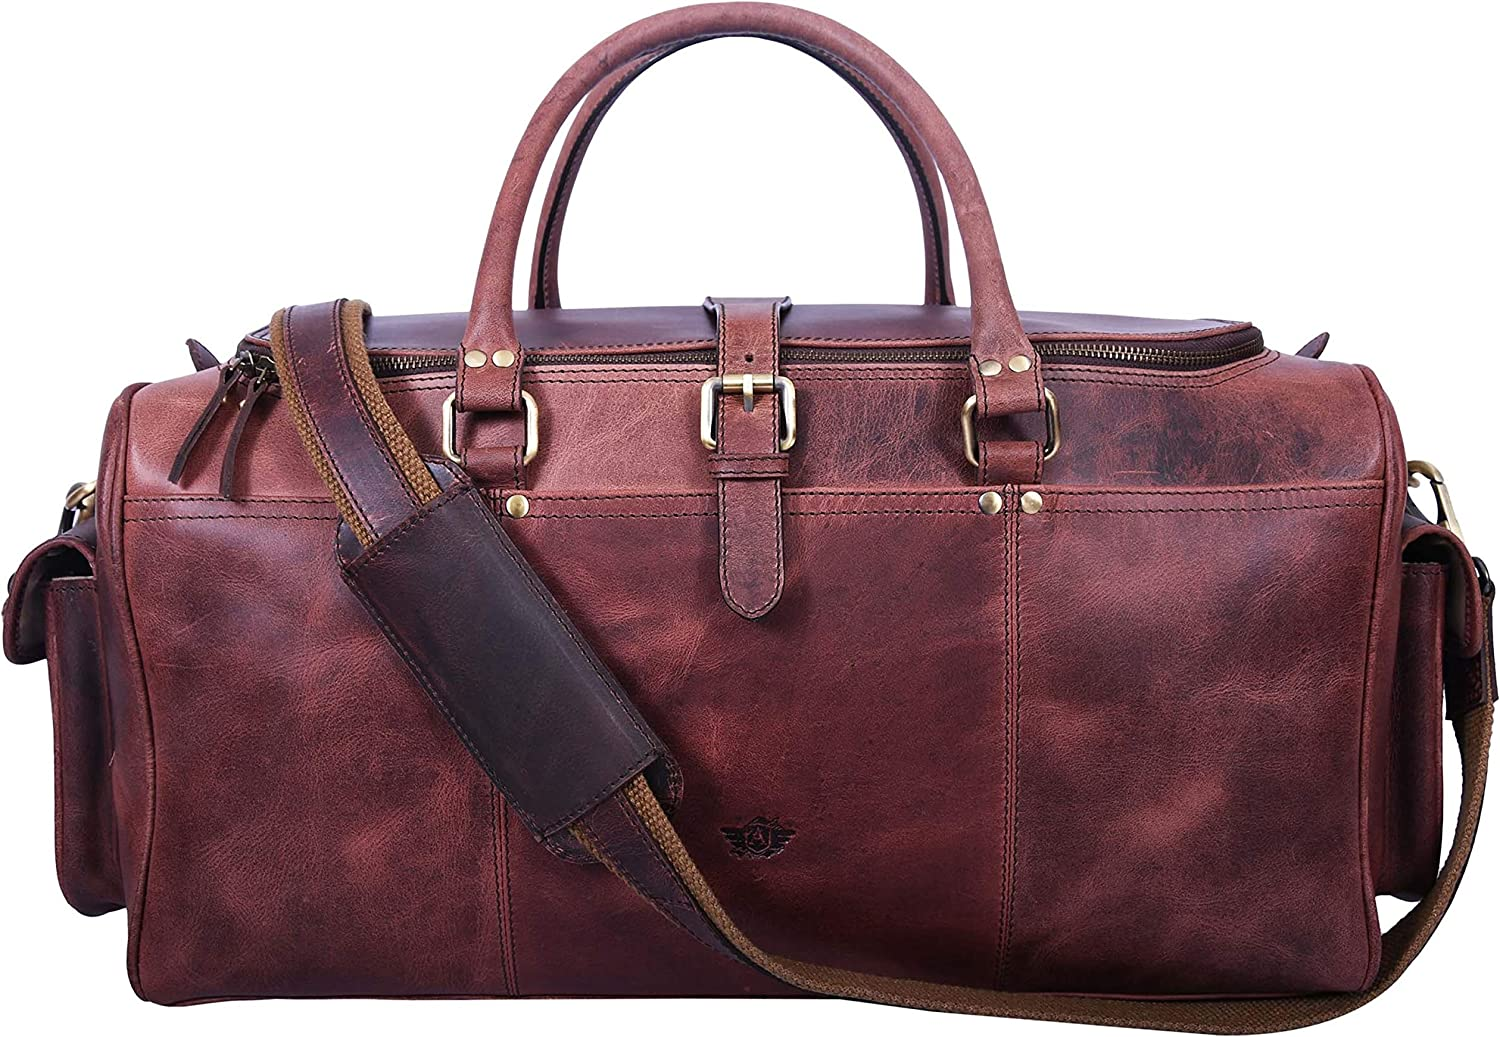 20 Leather Duffle Overnight Bag Oversized Genuine Leather Weekend Bag for Men and Women Brown